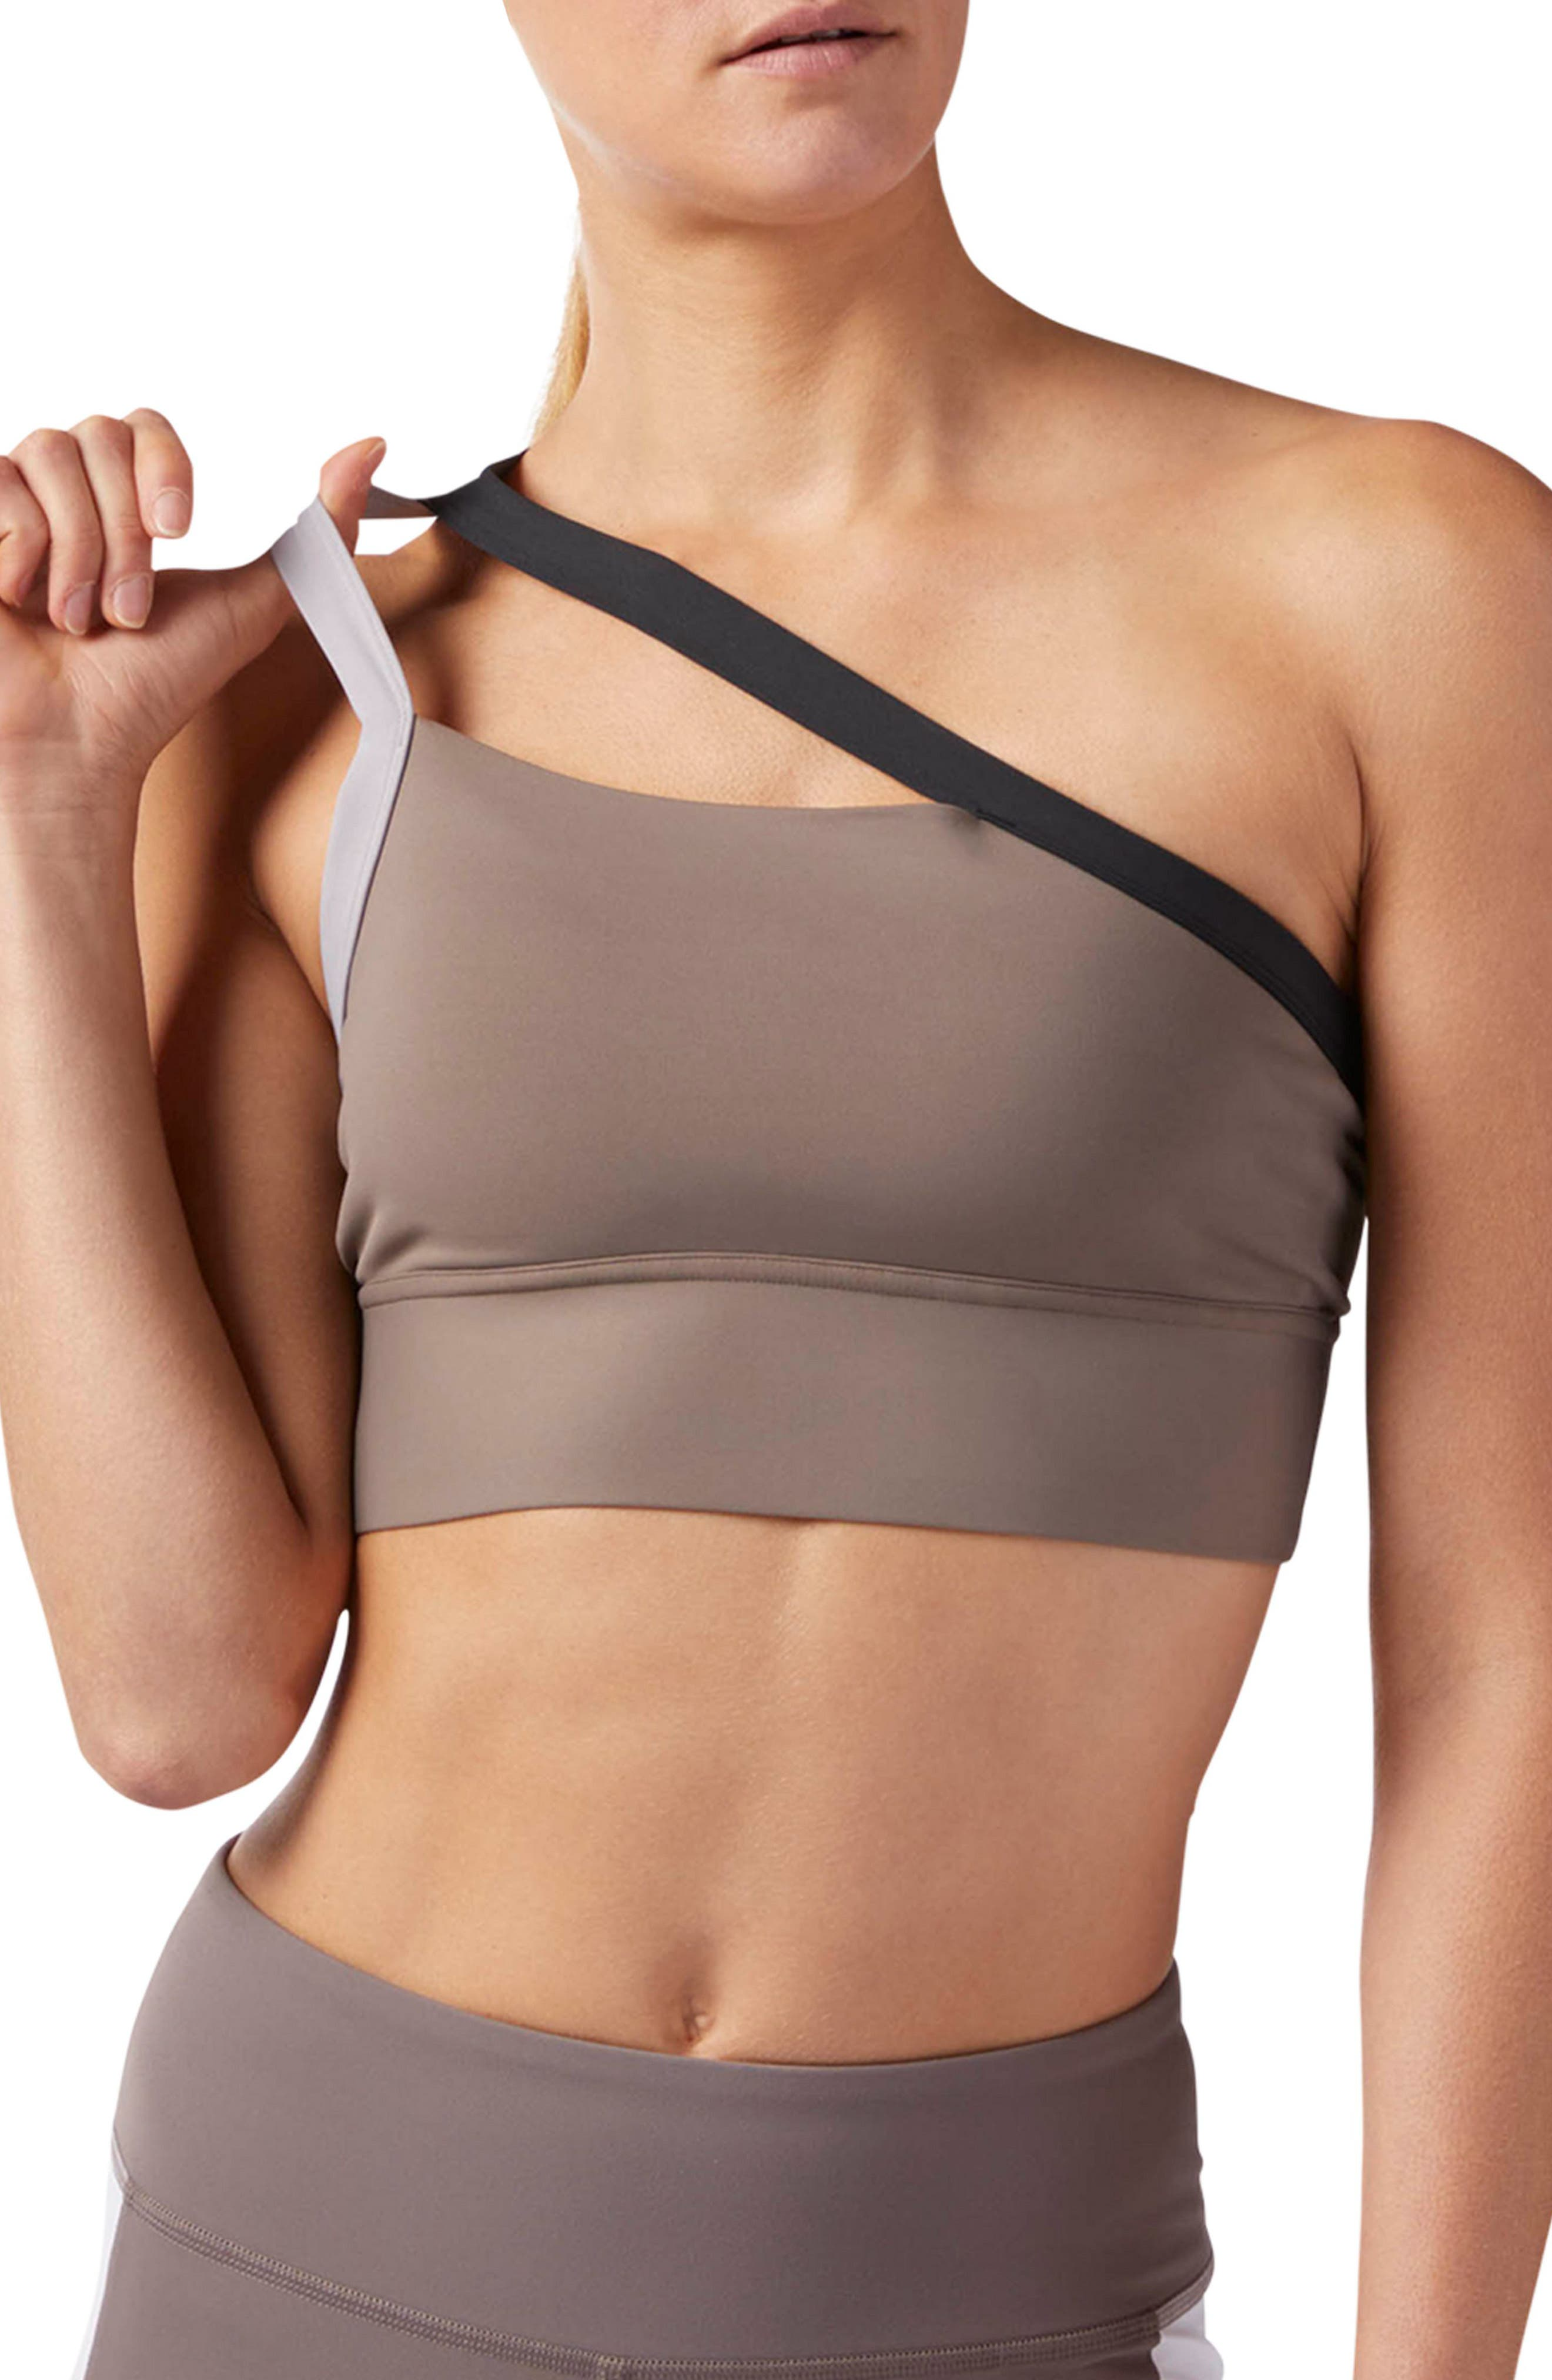 One-Shoulder Sports Bra,                             Main thumbnail 1, color,                             SMOKY TAUPE S18-R